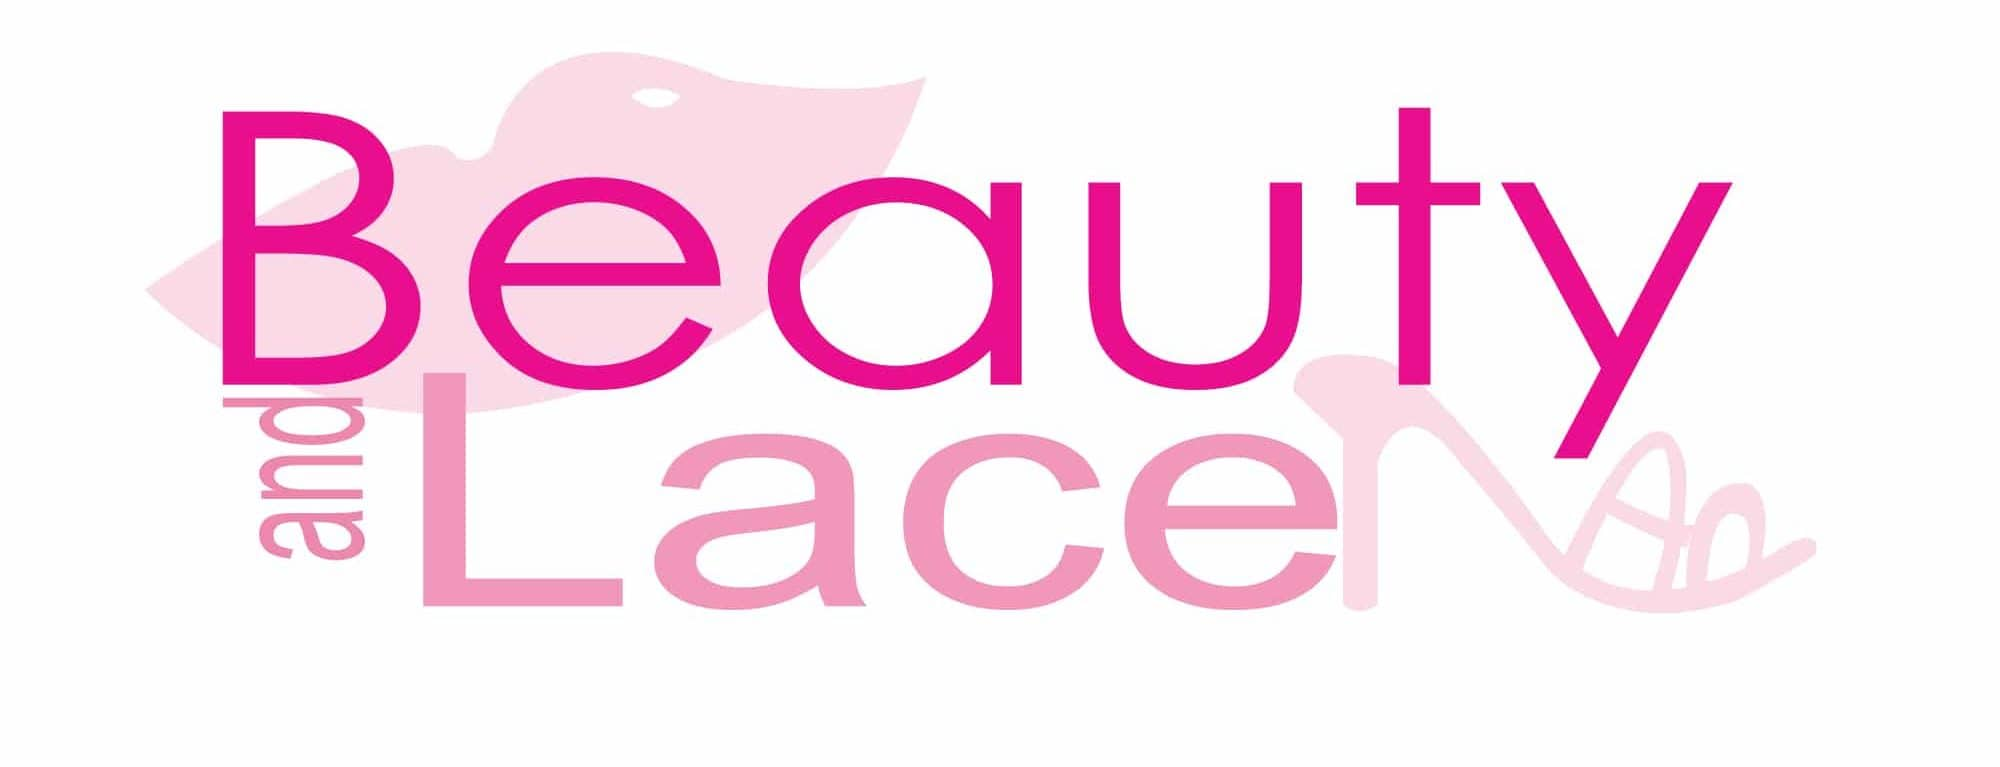 Lifestyle – Beauty and Lace